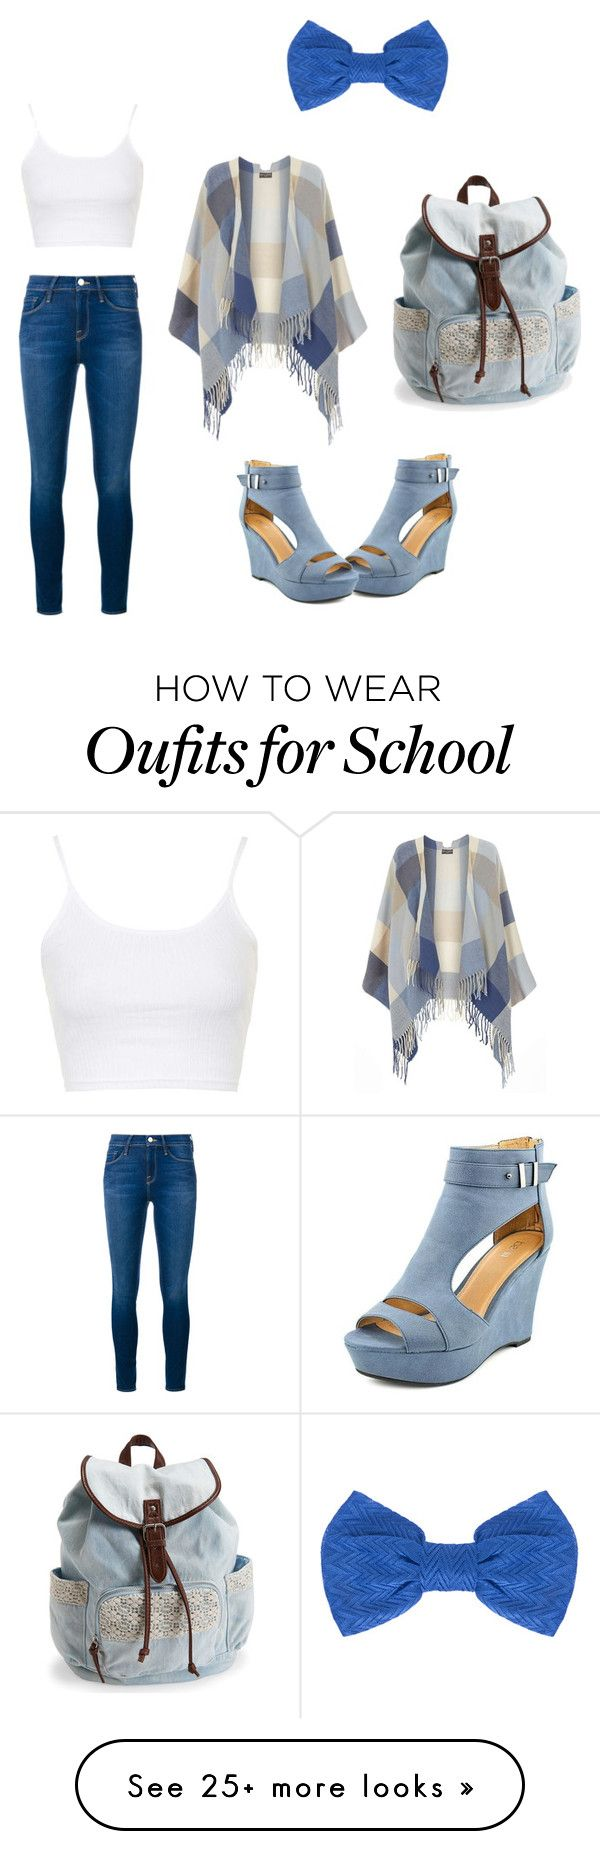 School Blues by jennakiwi on Polyvore featuring Dorothy Perkins, Topshop, Frame Denim, Aéropostale, Missoni, womens clothing, women, female, woman and misses